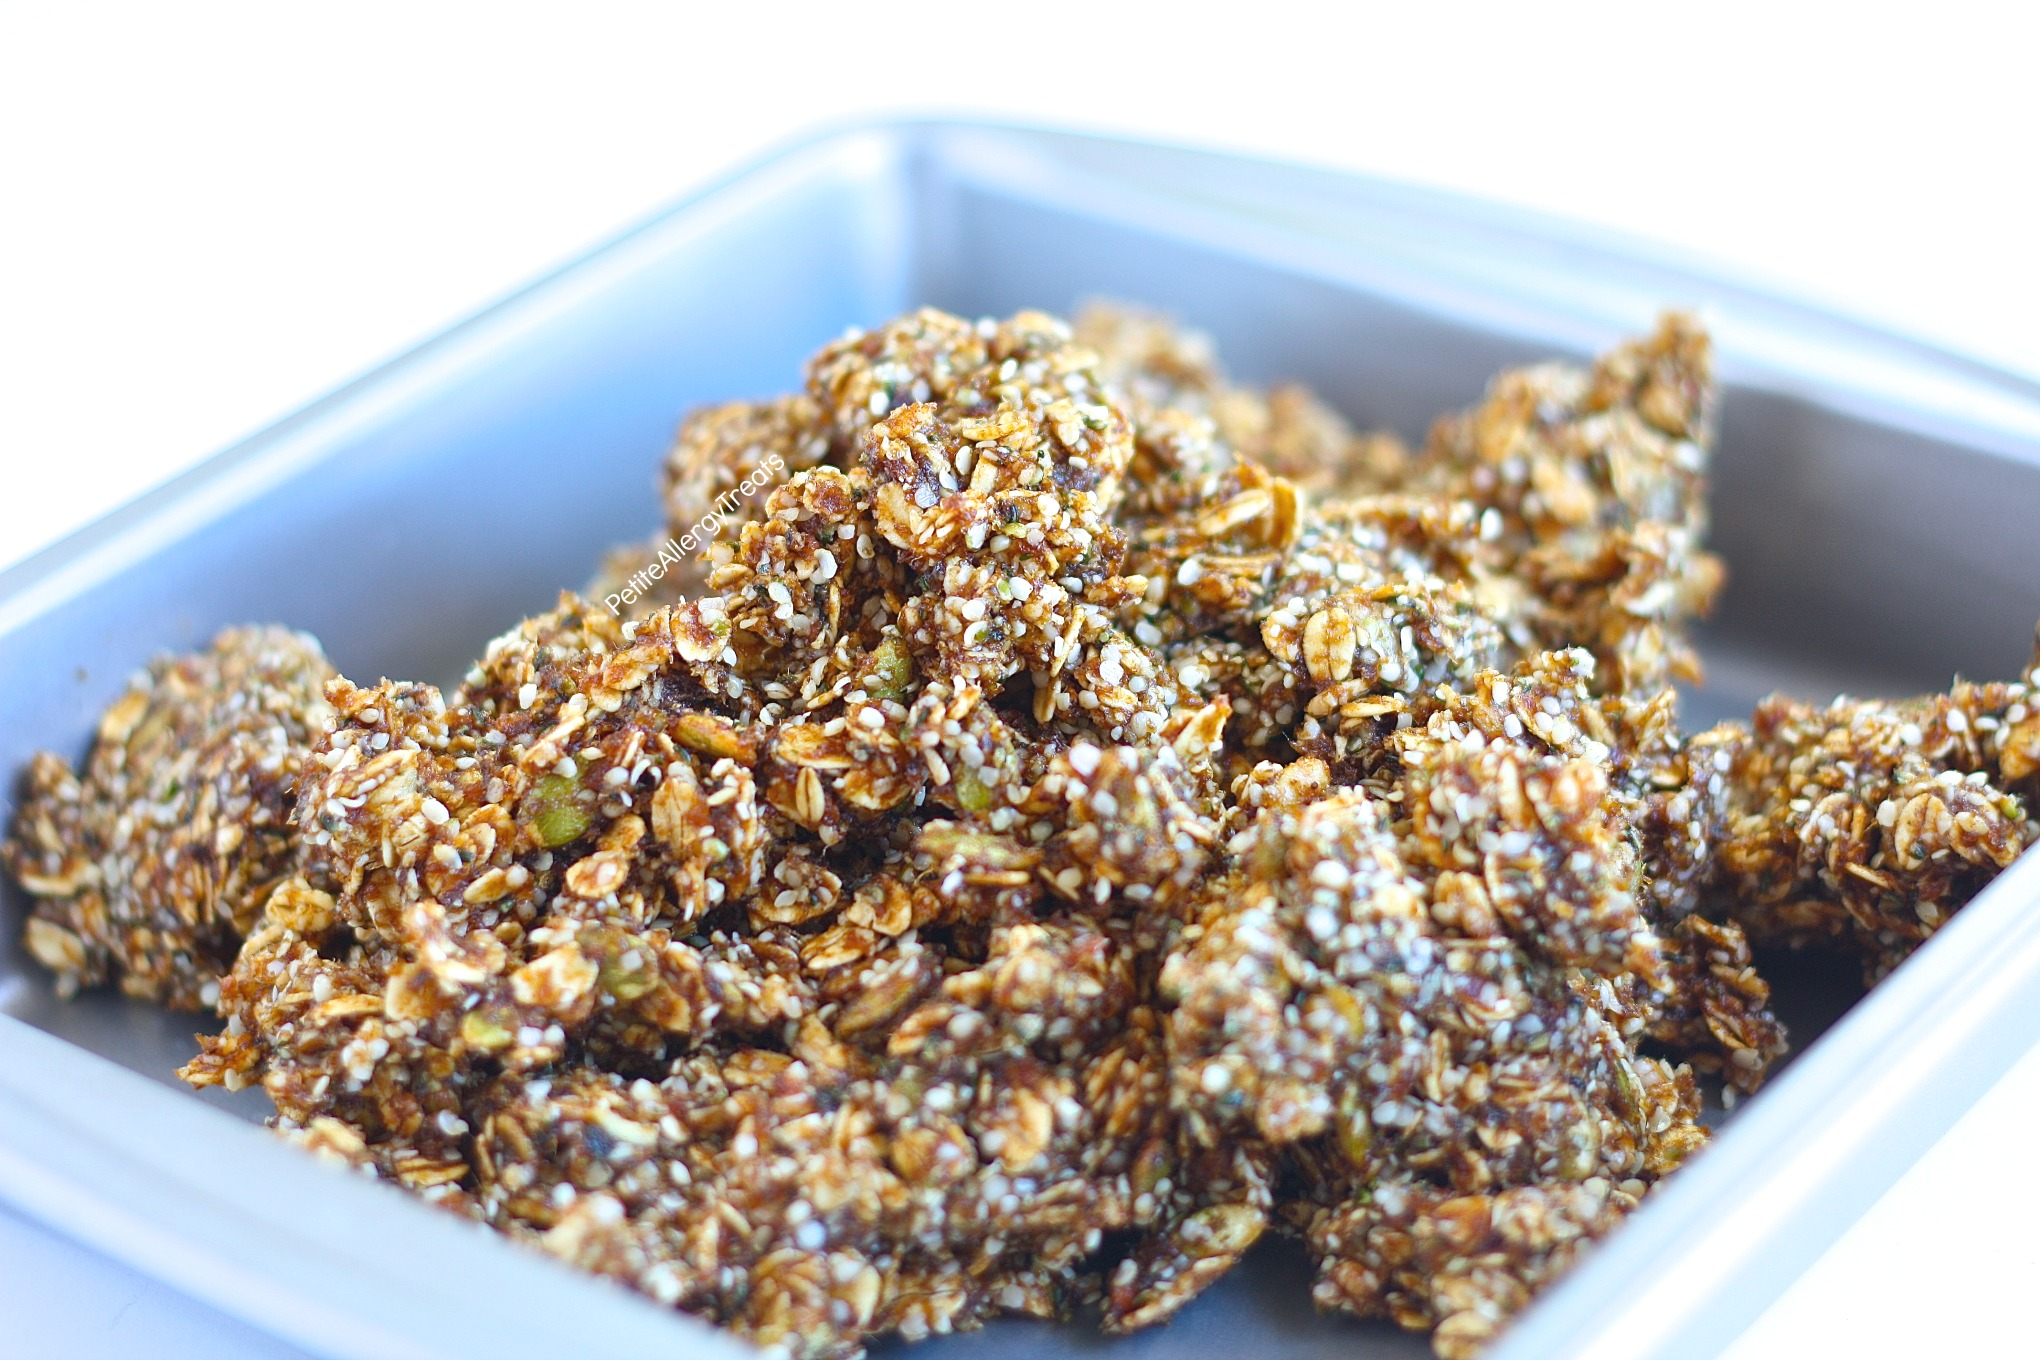 Gluten Free Gingersnap Granola Bars Recipe (nut free Vegan)- Healthier nut free protein packed gingersnap granola bars. Food Allergy Friendly.